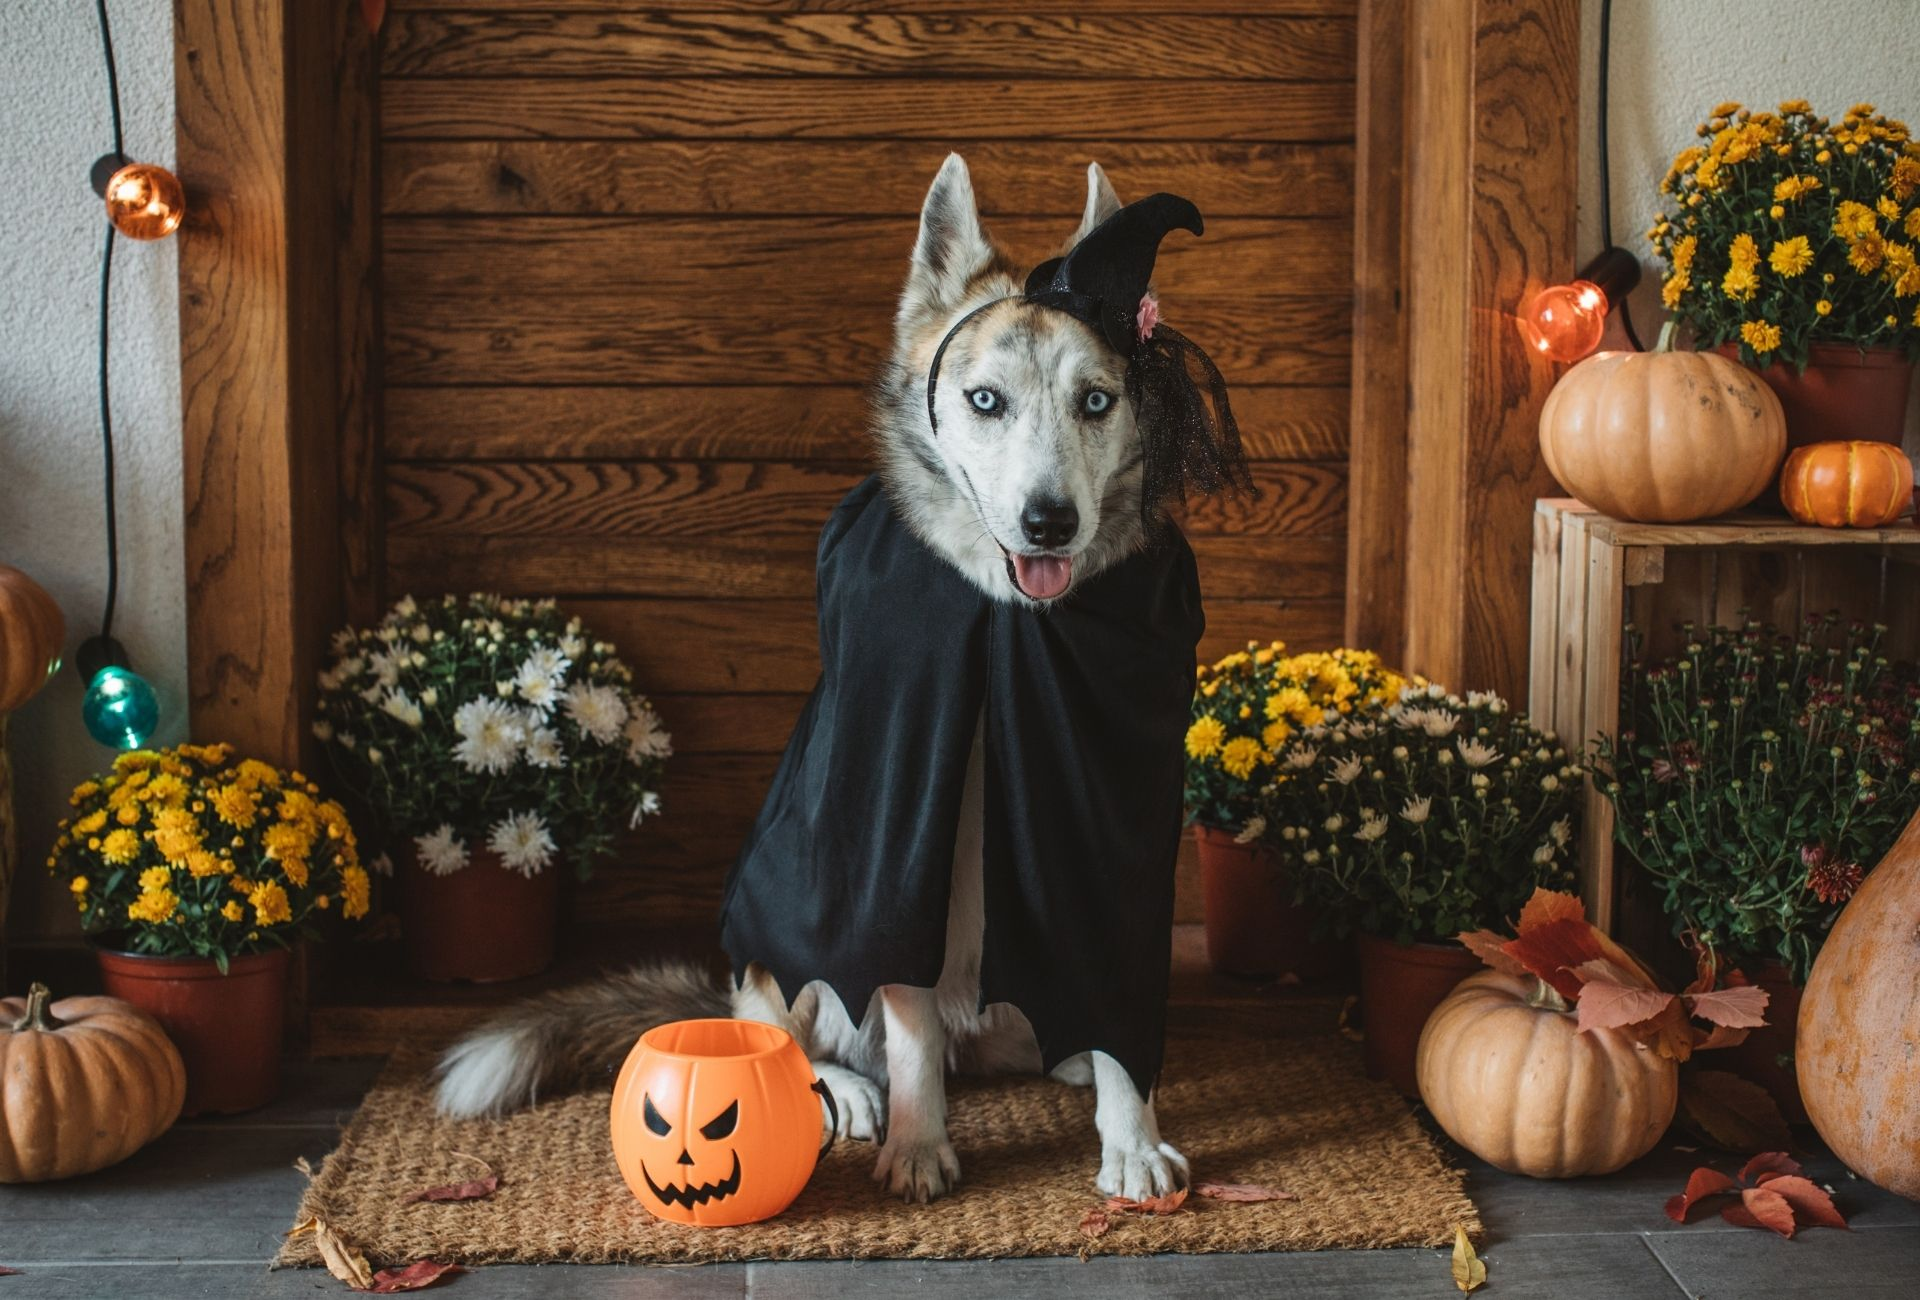 Husky wearing a witch costume with a Halloween pumpkin out front.